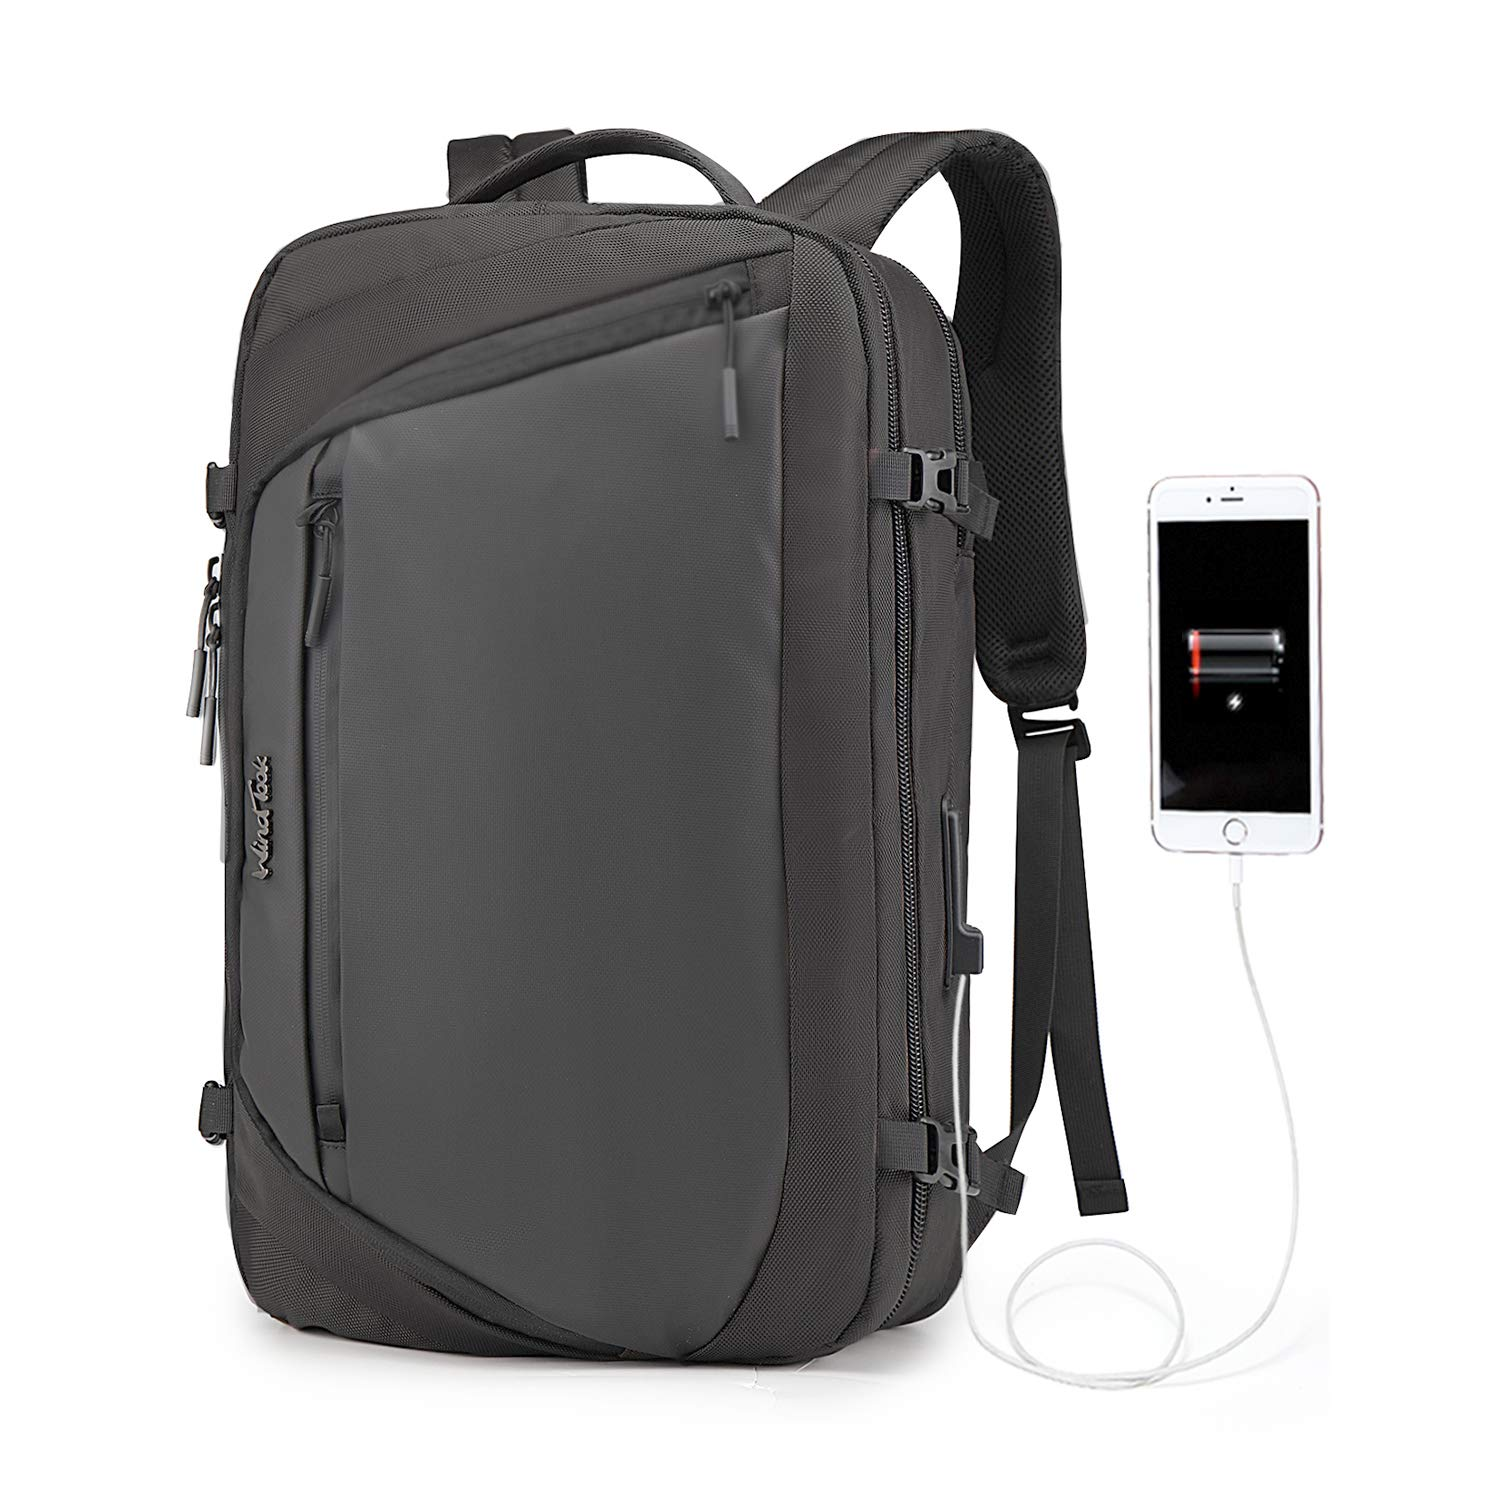 WindTook Laptop Backpack Business Travel 17inch Laptops Backpack with USB Charging Port, College School Computer Bag for Women & Men (17in-Black)